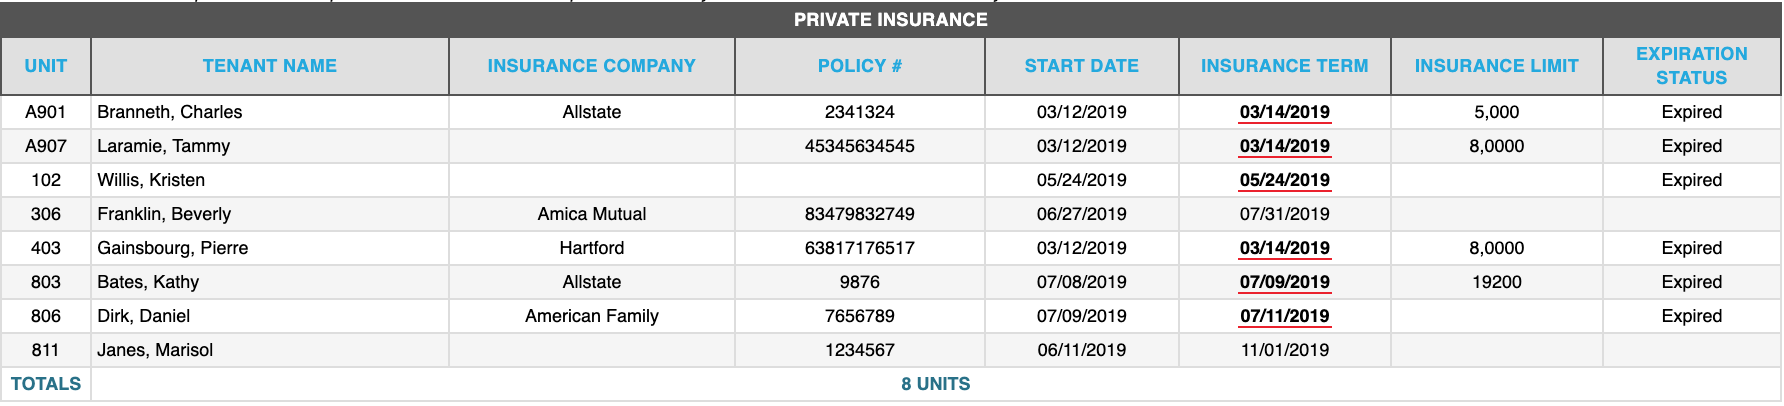 Private_Insurance_-_from_report.png